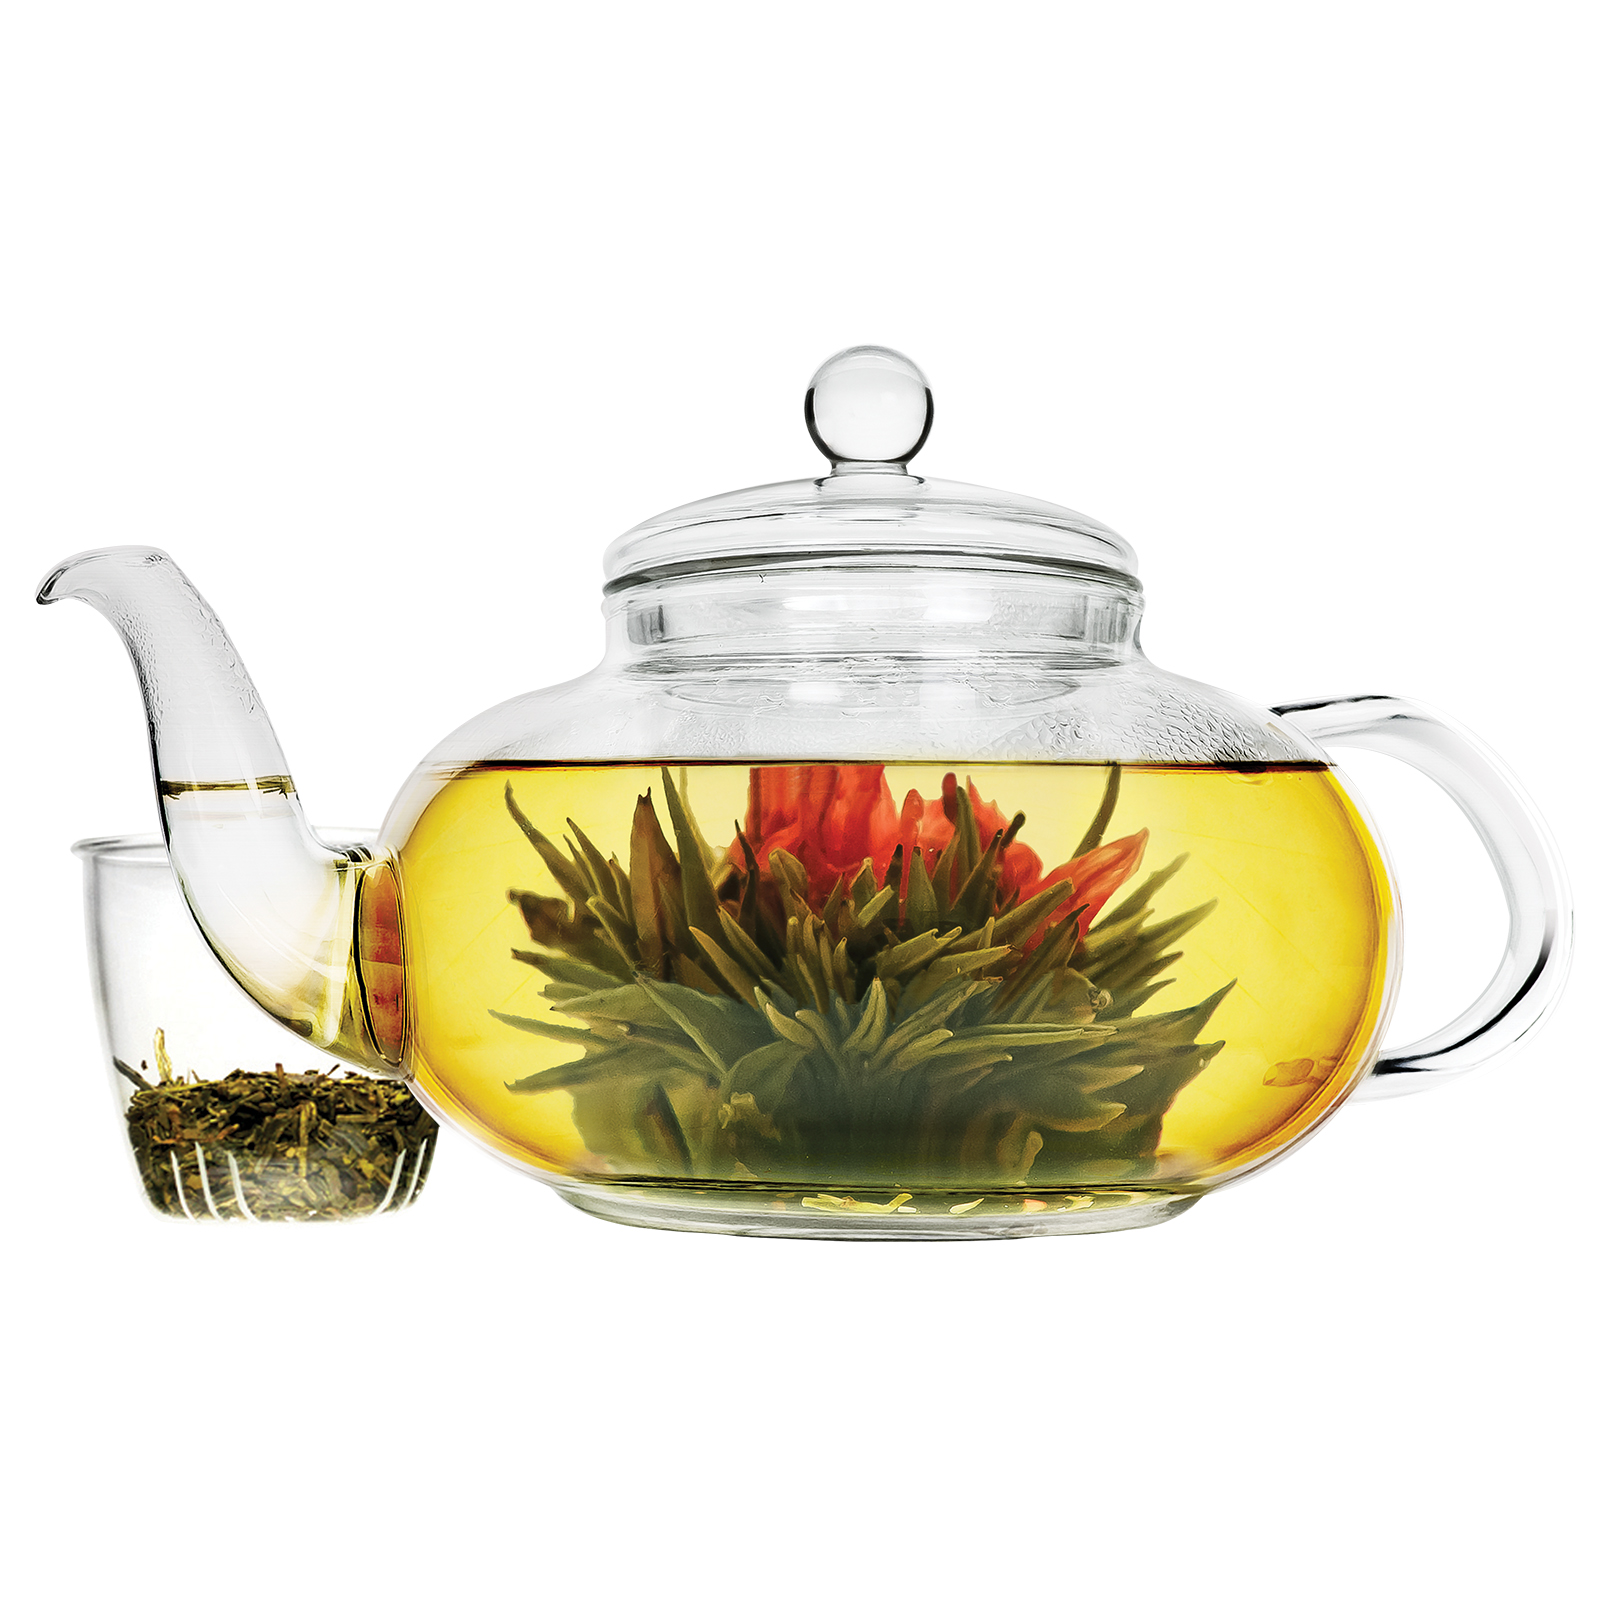 Daisy 40 oz. Temperature Safe Glass Teapot with Glass Loose Leaf Tea Infuser